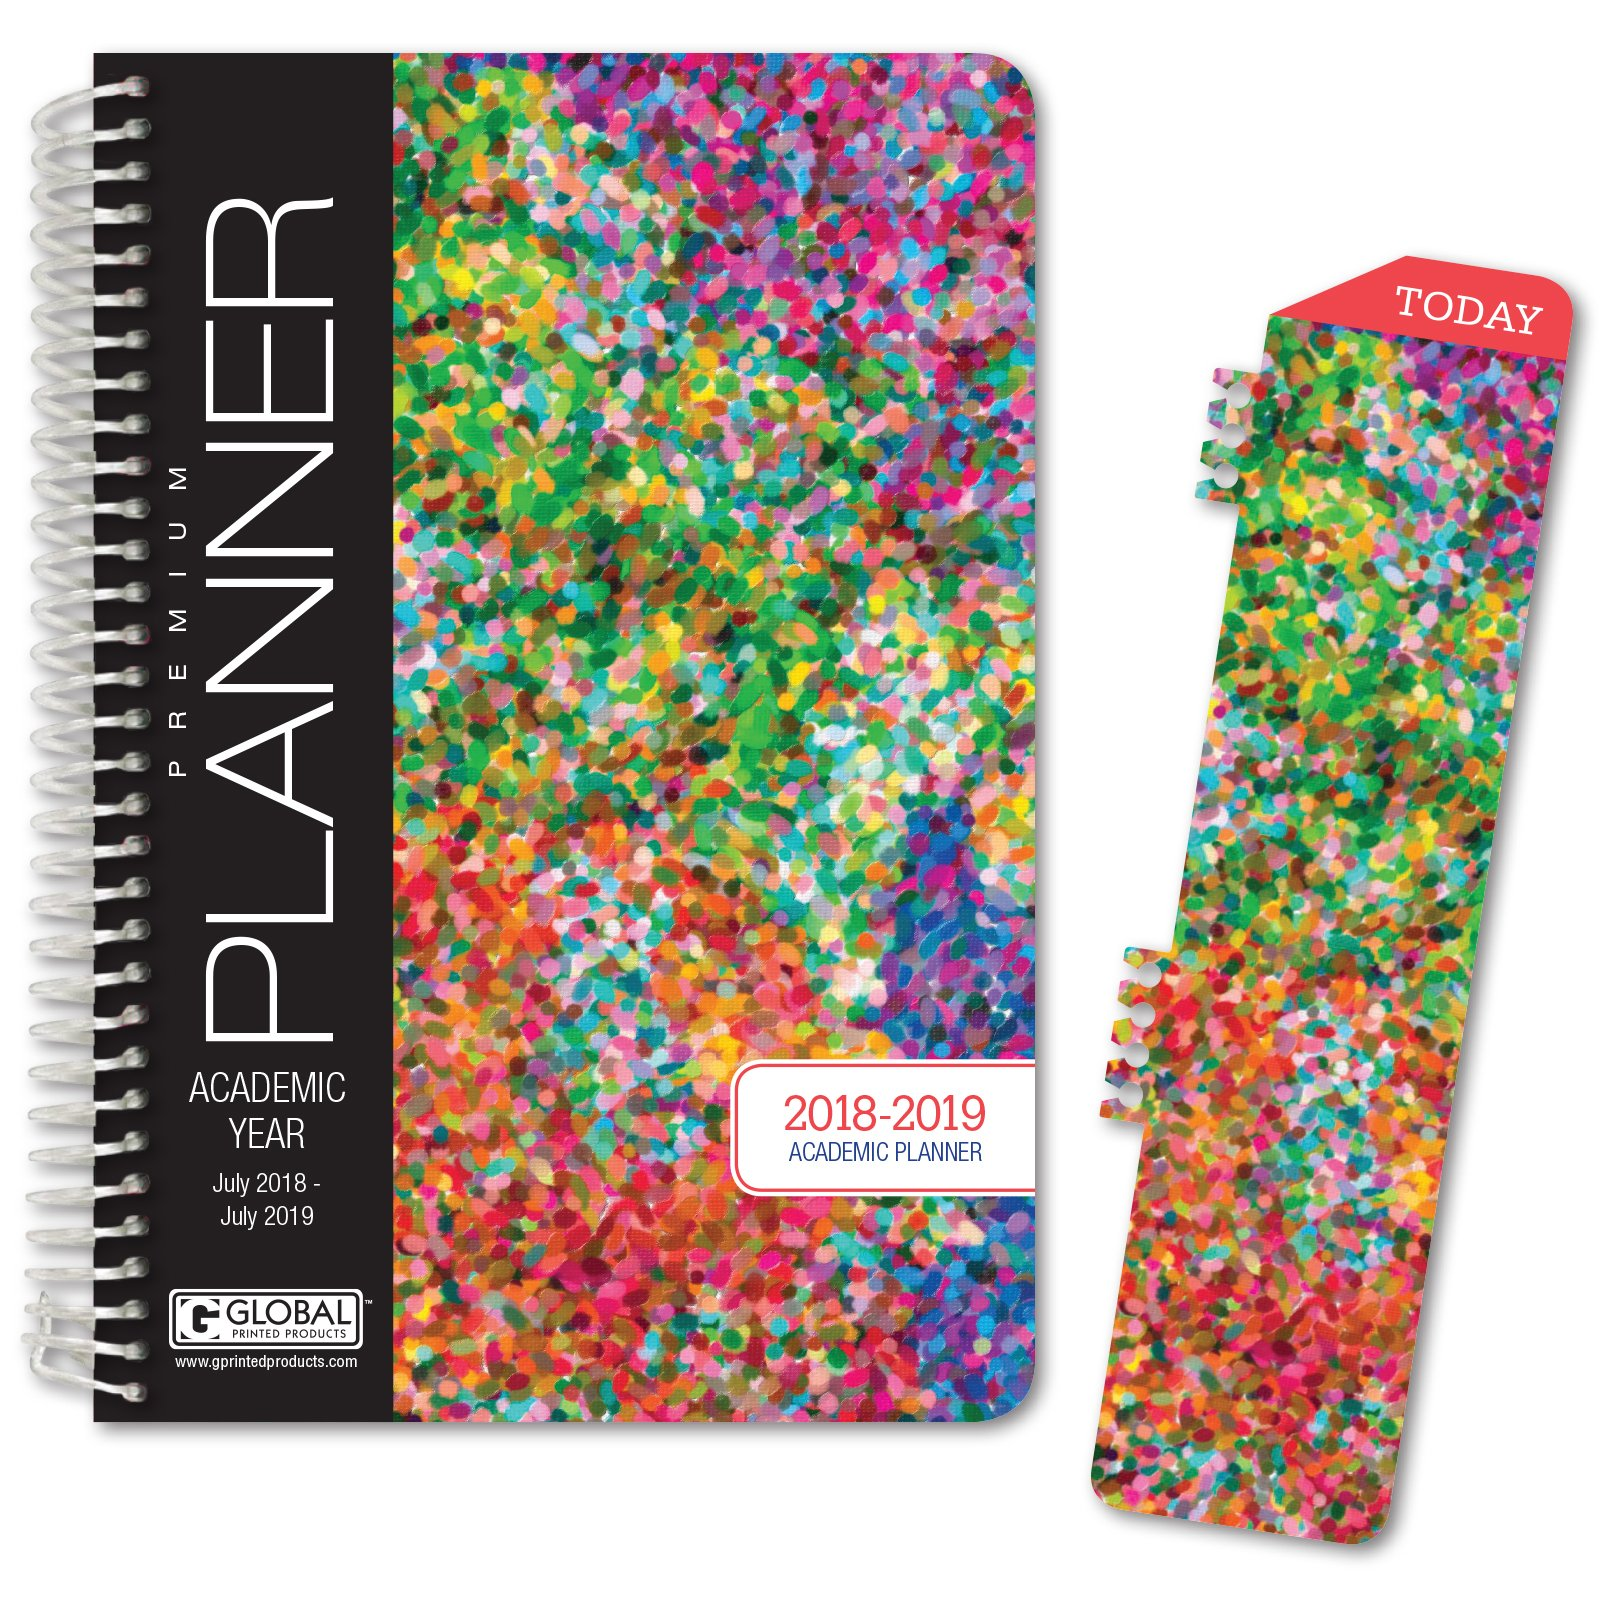 HARDCOVER Academic Year Planner 2018-2019 - 5.5''x8'' Daily Planner / Weekly Planner / Monthly Planner / Yearly Agenda. Bonus BOOKMARK (Colorful)